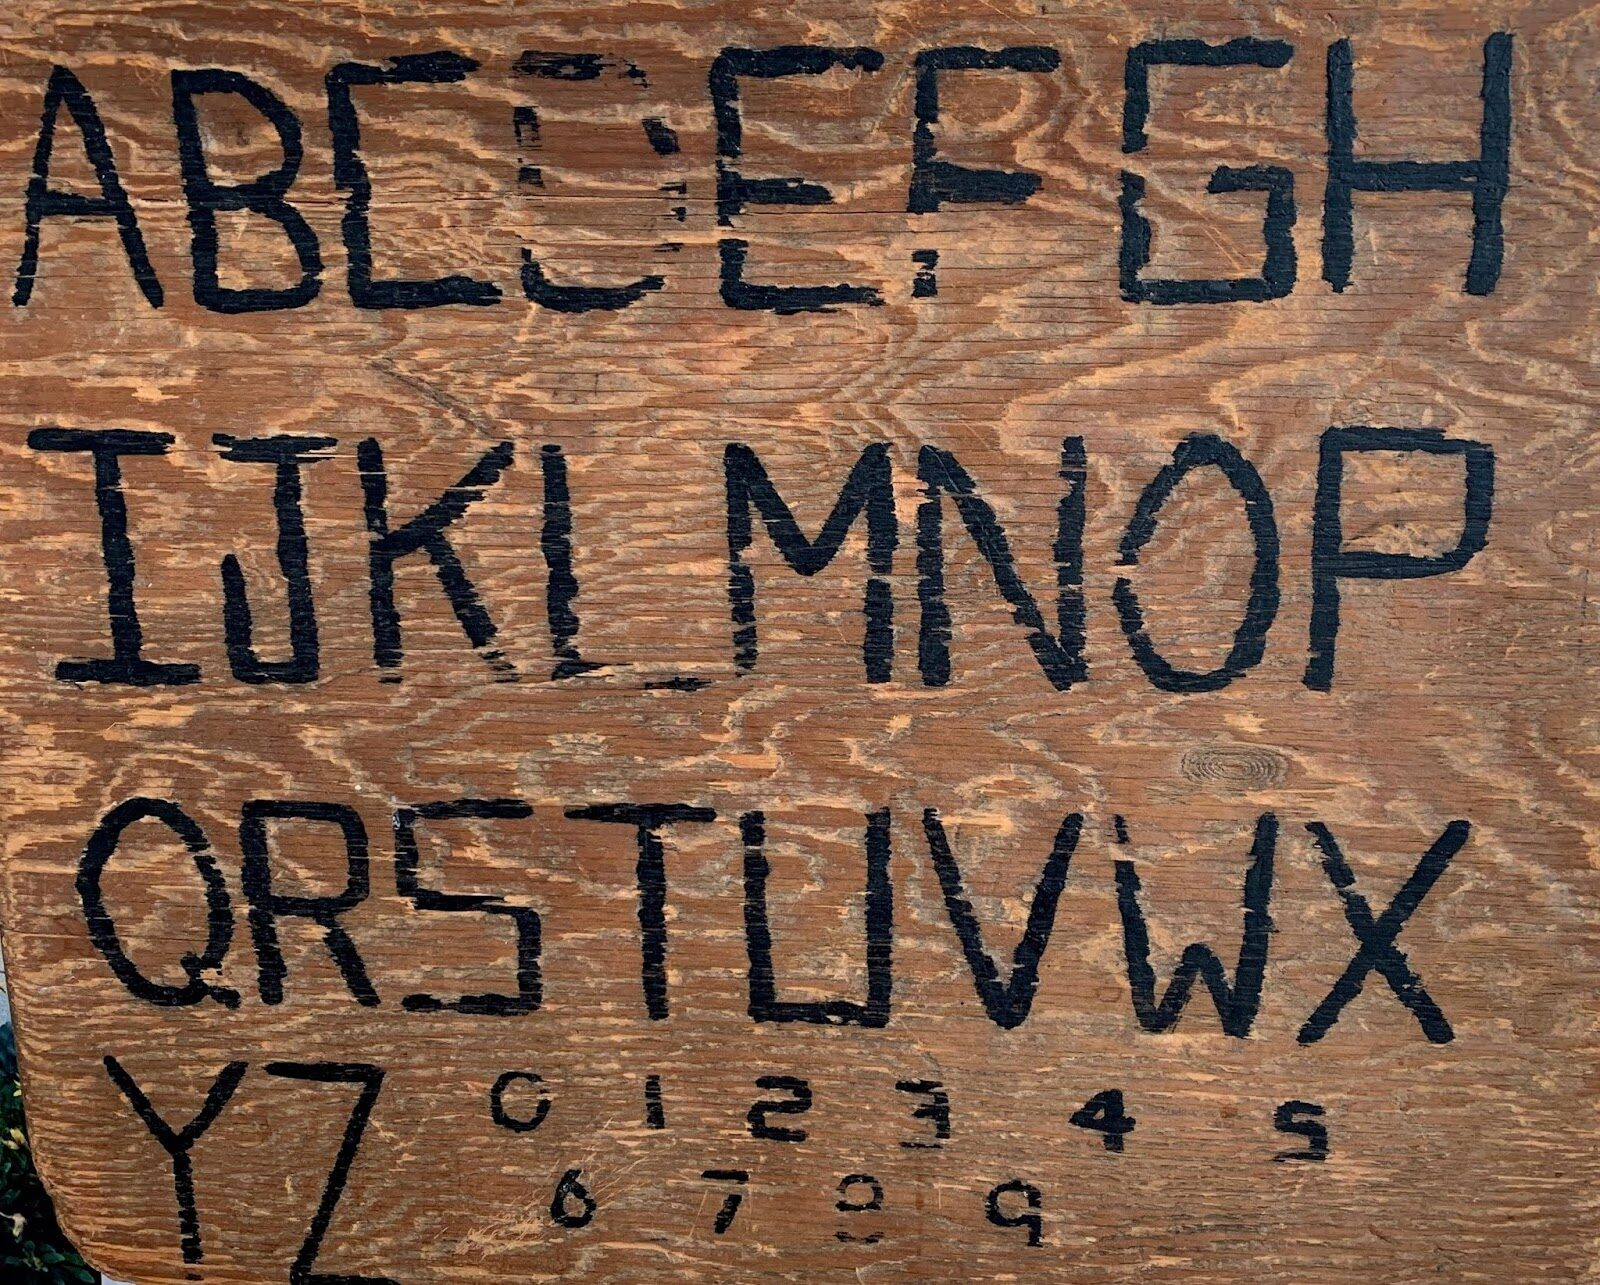 wood plank hand-carved with capital letters A-Z and numbers